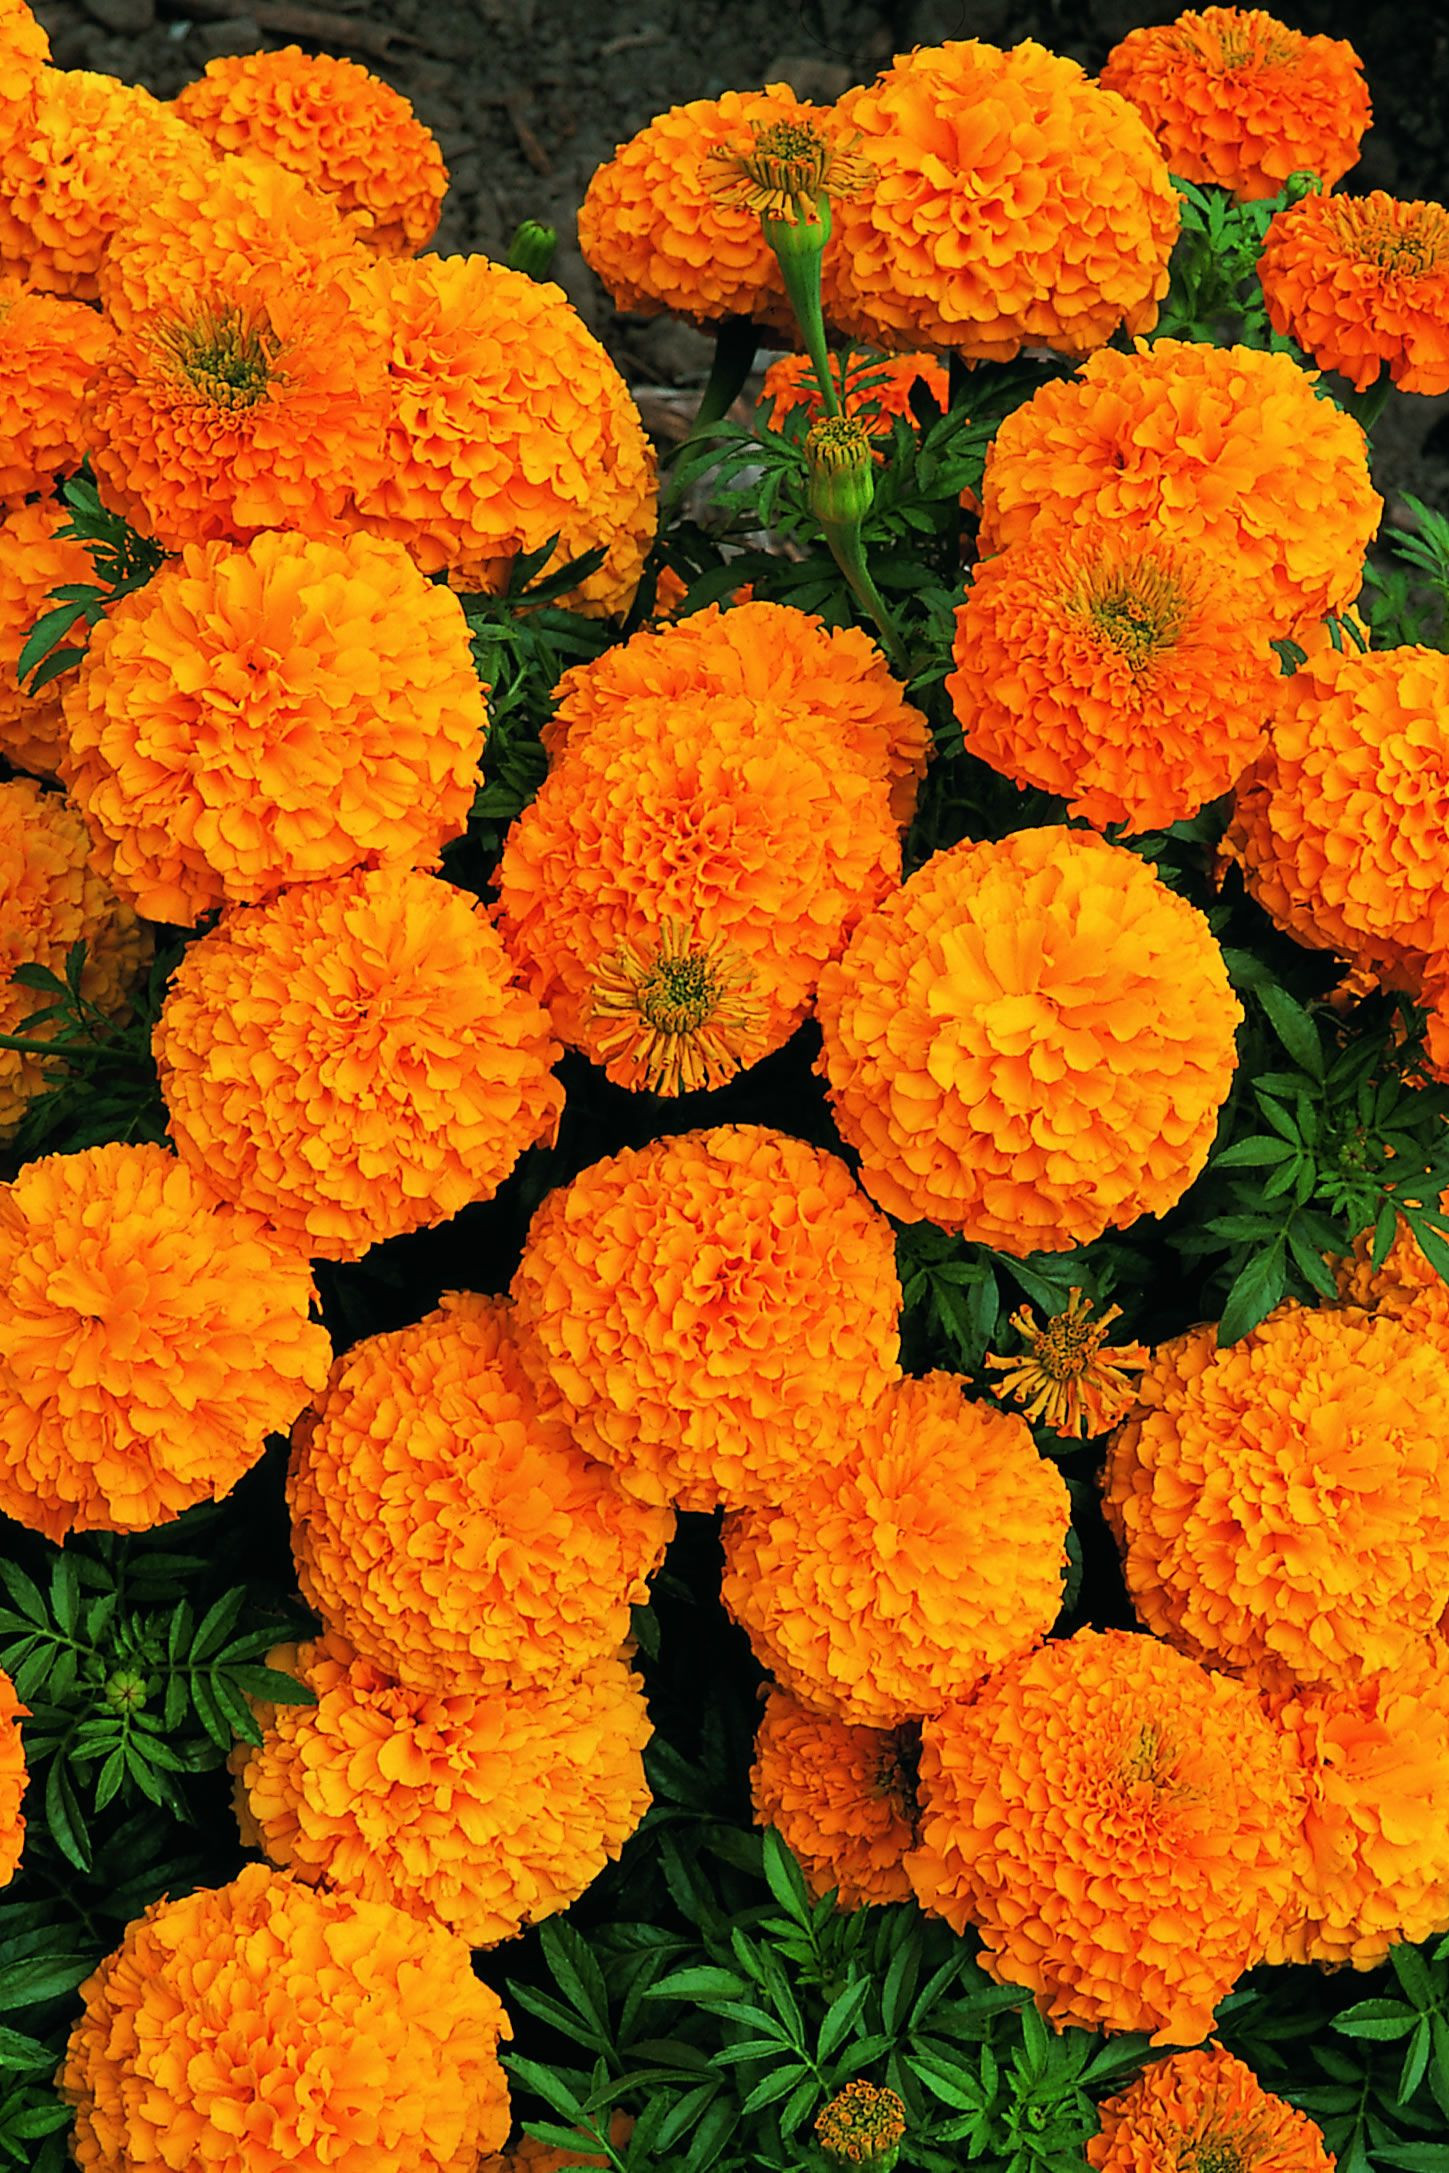 """Marigold flowers are a important Day of the Dead symbol These yellow flowers are referred to as the """"flower of the dead"""" the traditional flower to honor"""